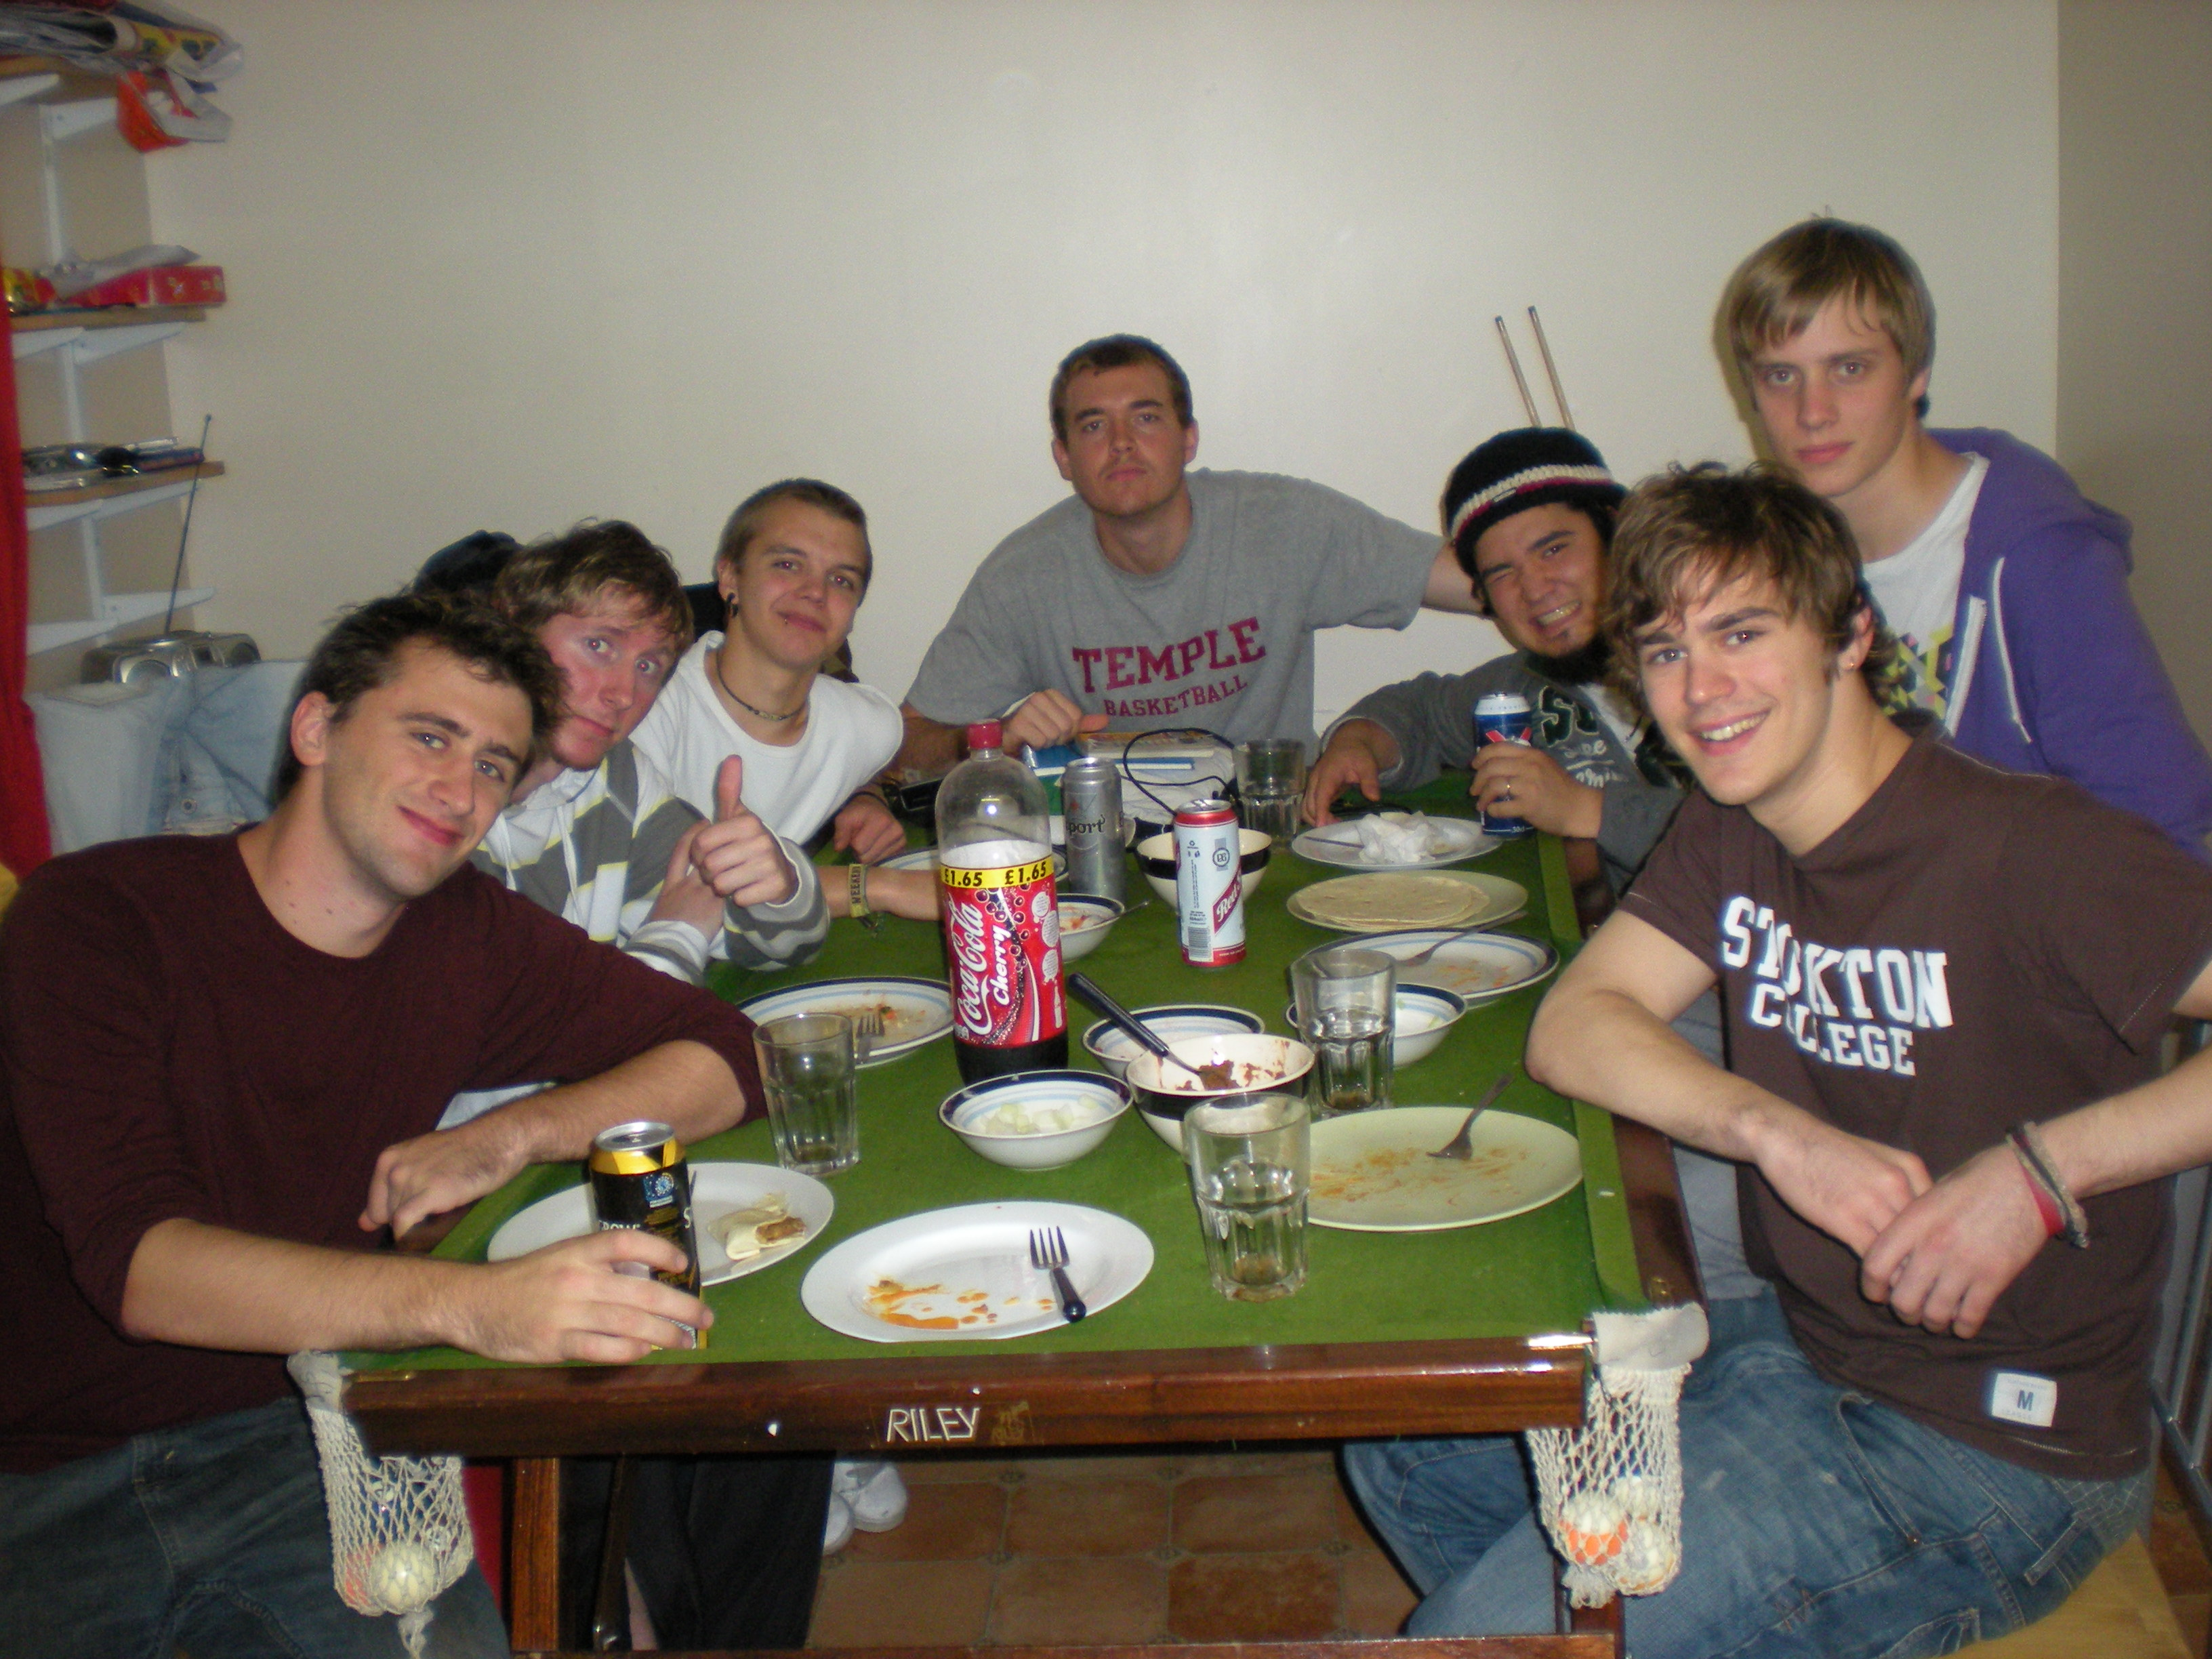 Brits, Brazilians and Americans share a meal, Oct. 5, 2008.